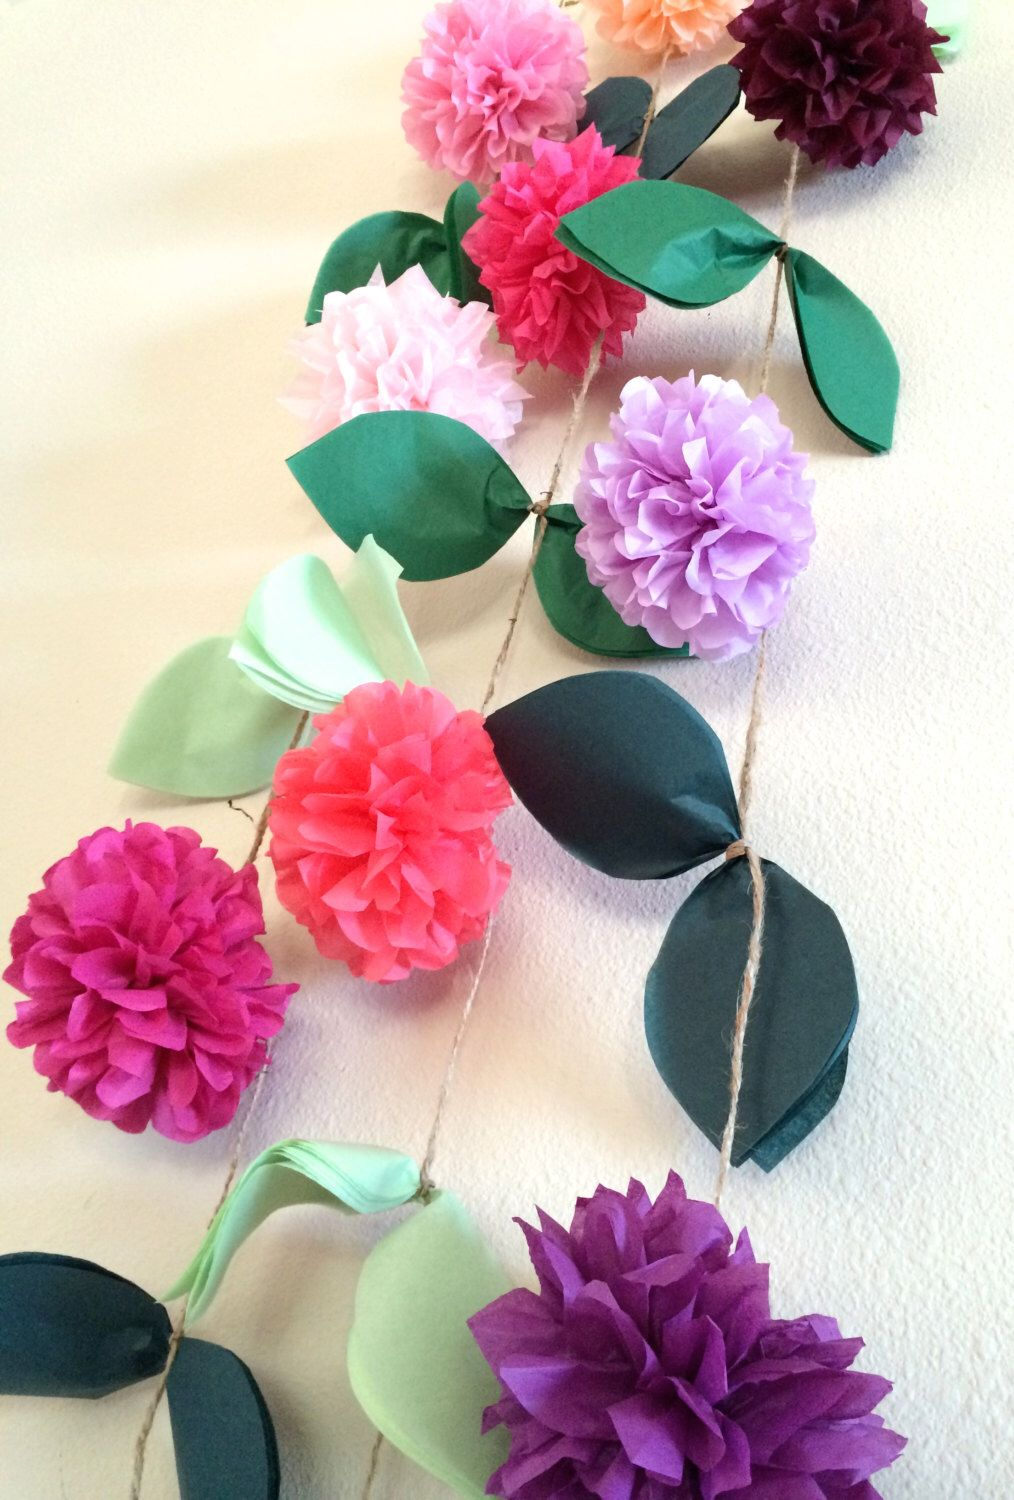 Pin By Gab Reyes On Diy Flowers Pinterest Diy Garland Garland